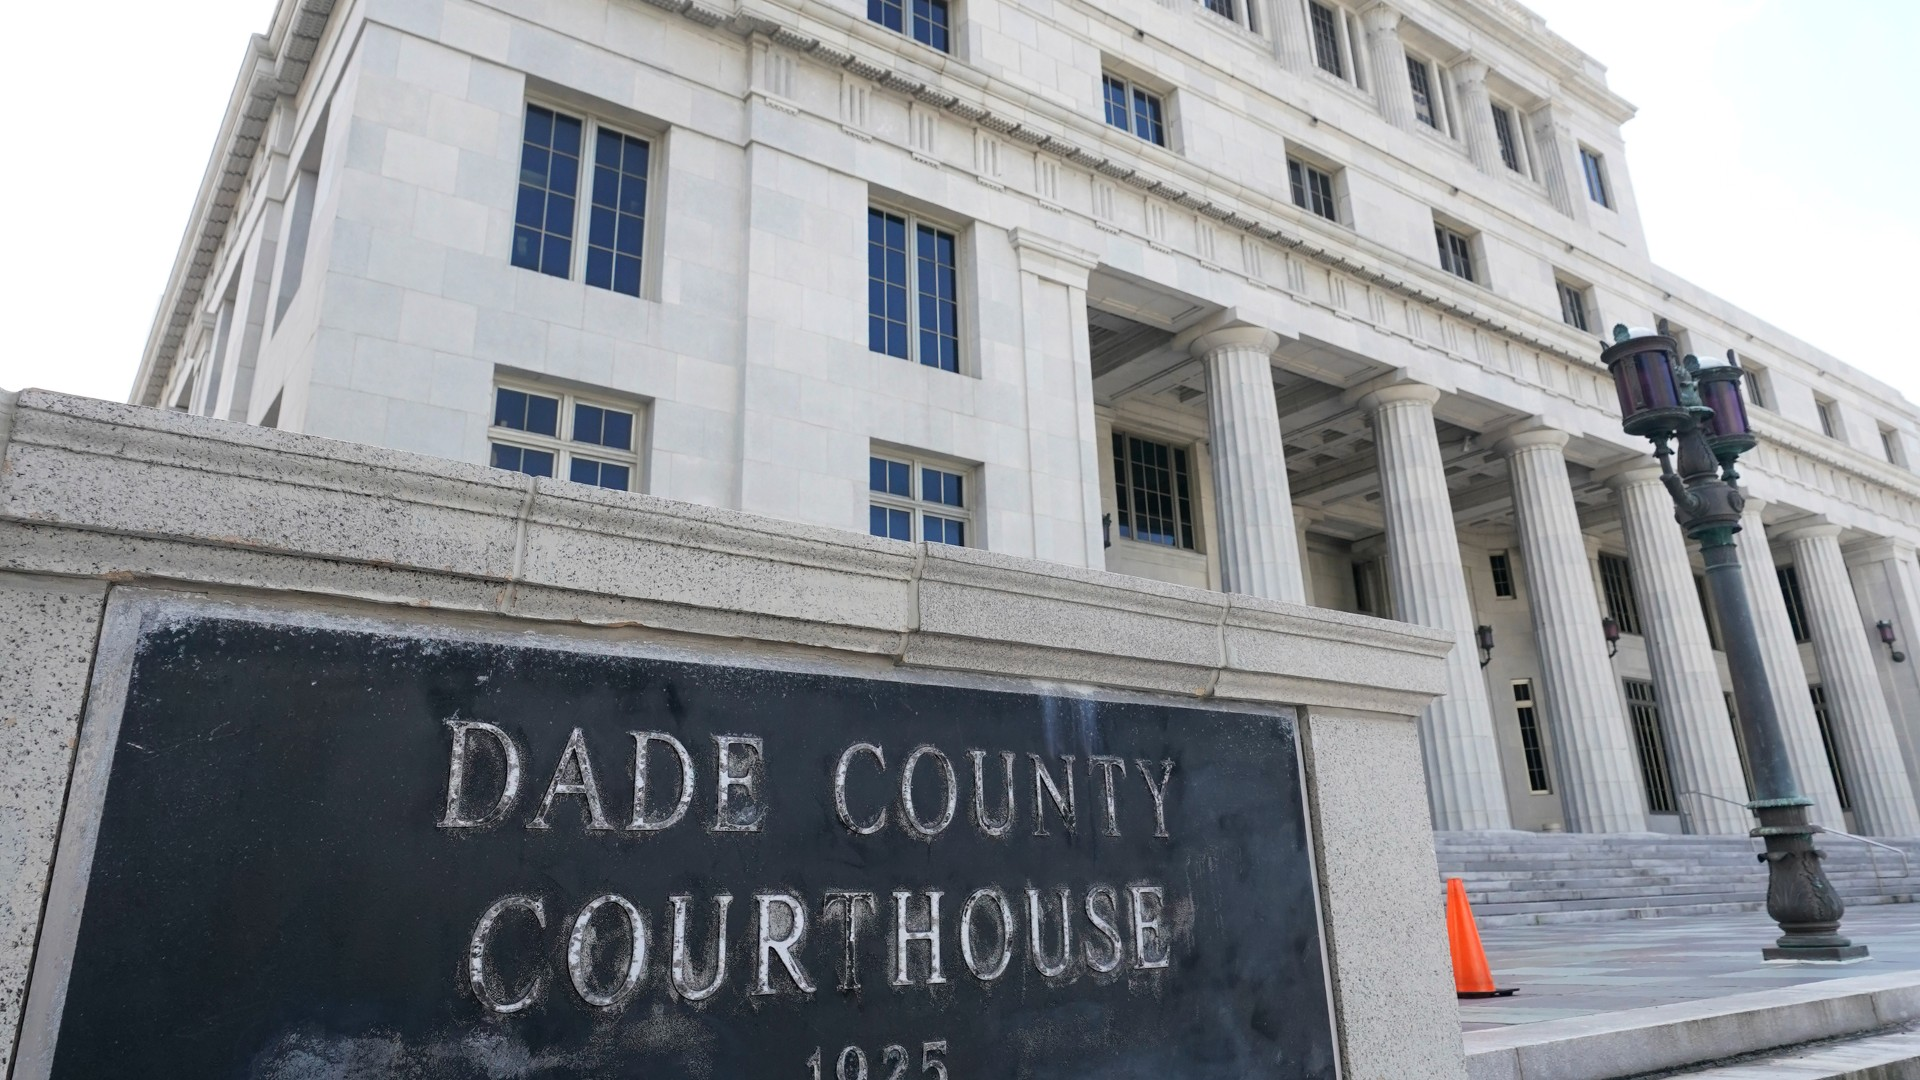 This Oct. 8, 2020 photo shows the Miami-Dade County Courthouse in Miami. Officials say the Miami-Dade County Courthouse will begin undergoing repairs immediately after a review found safety concerns within the building. (AP Photo/Wilfredo Lee)